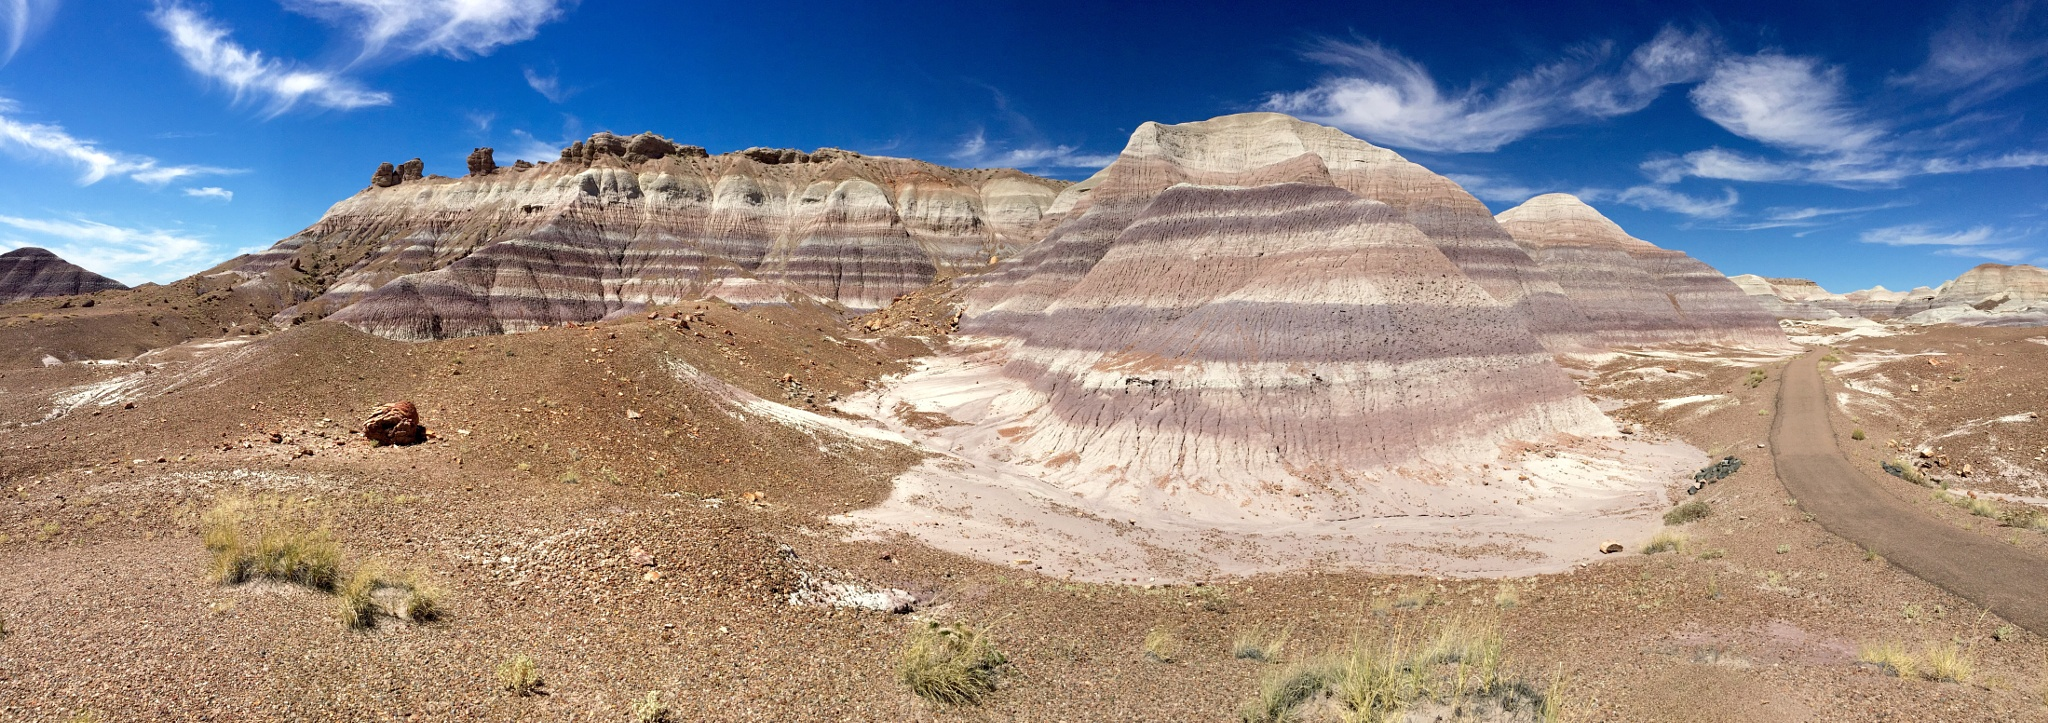 Petrified Forest - Blue Mesa Panorama by Carl Main